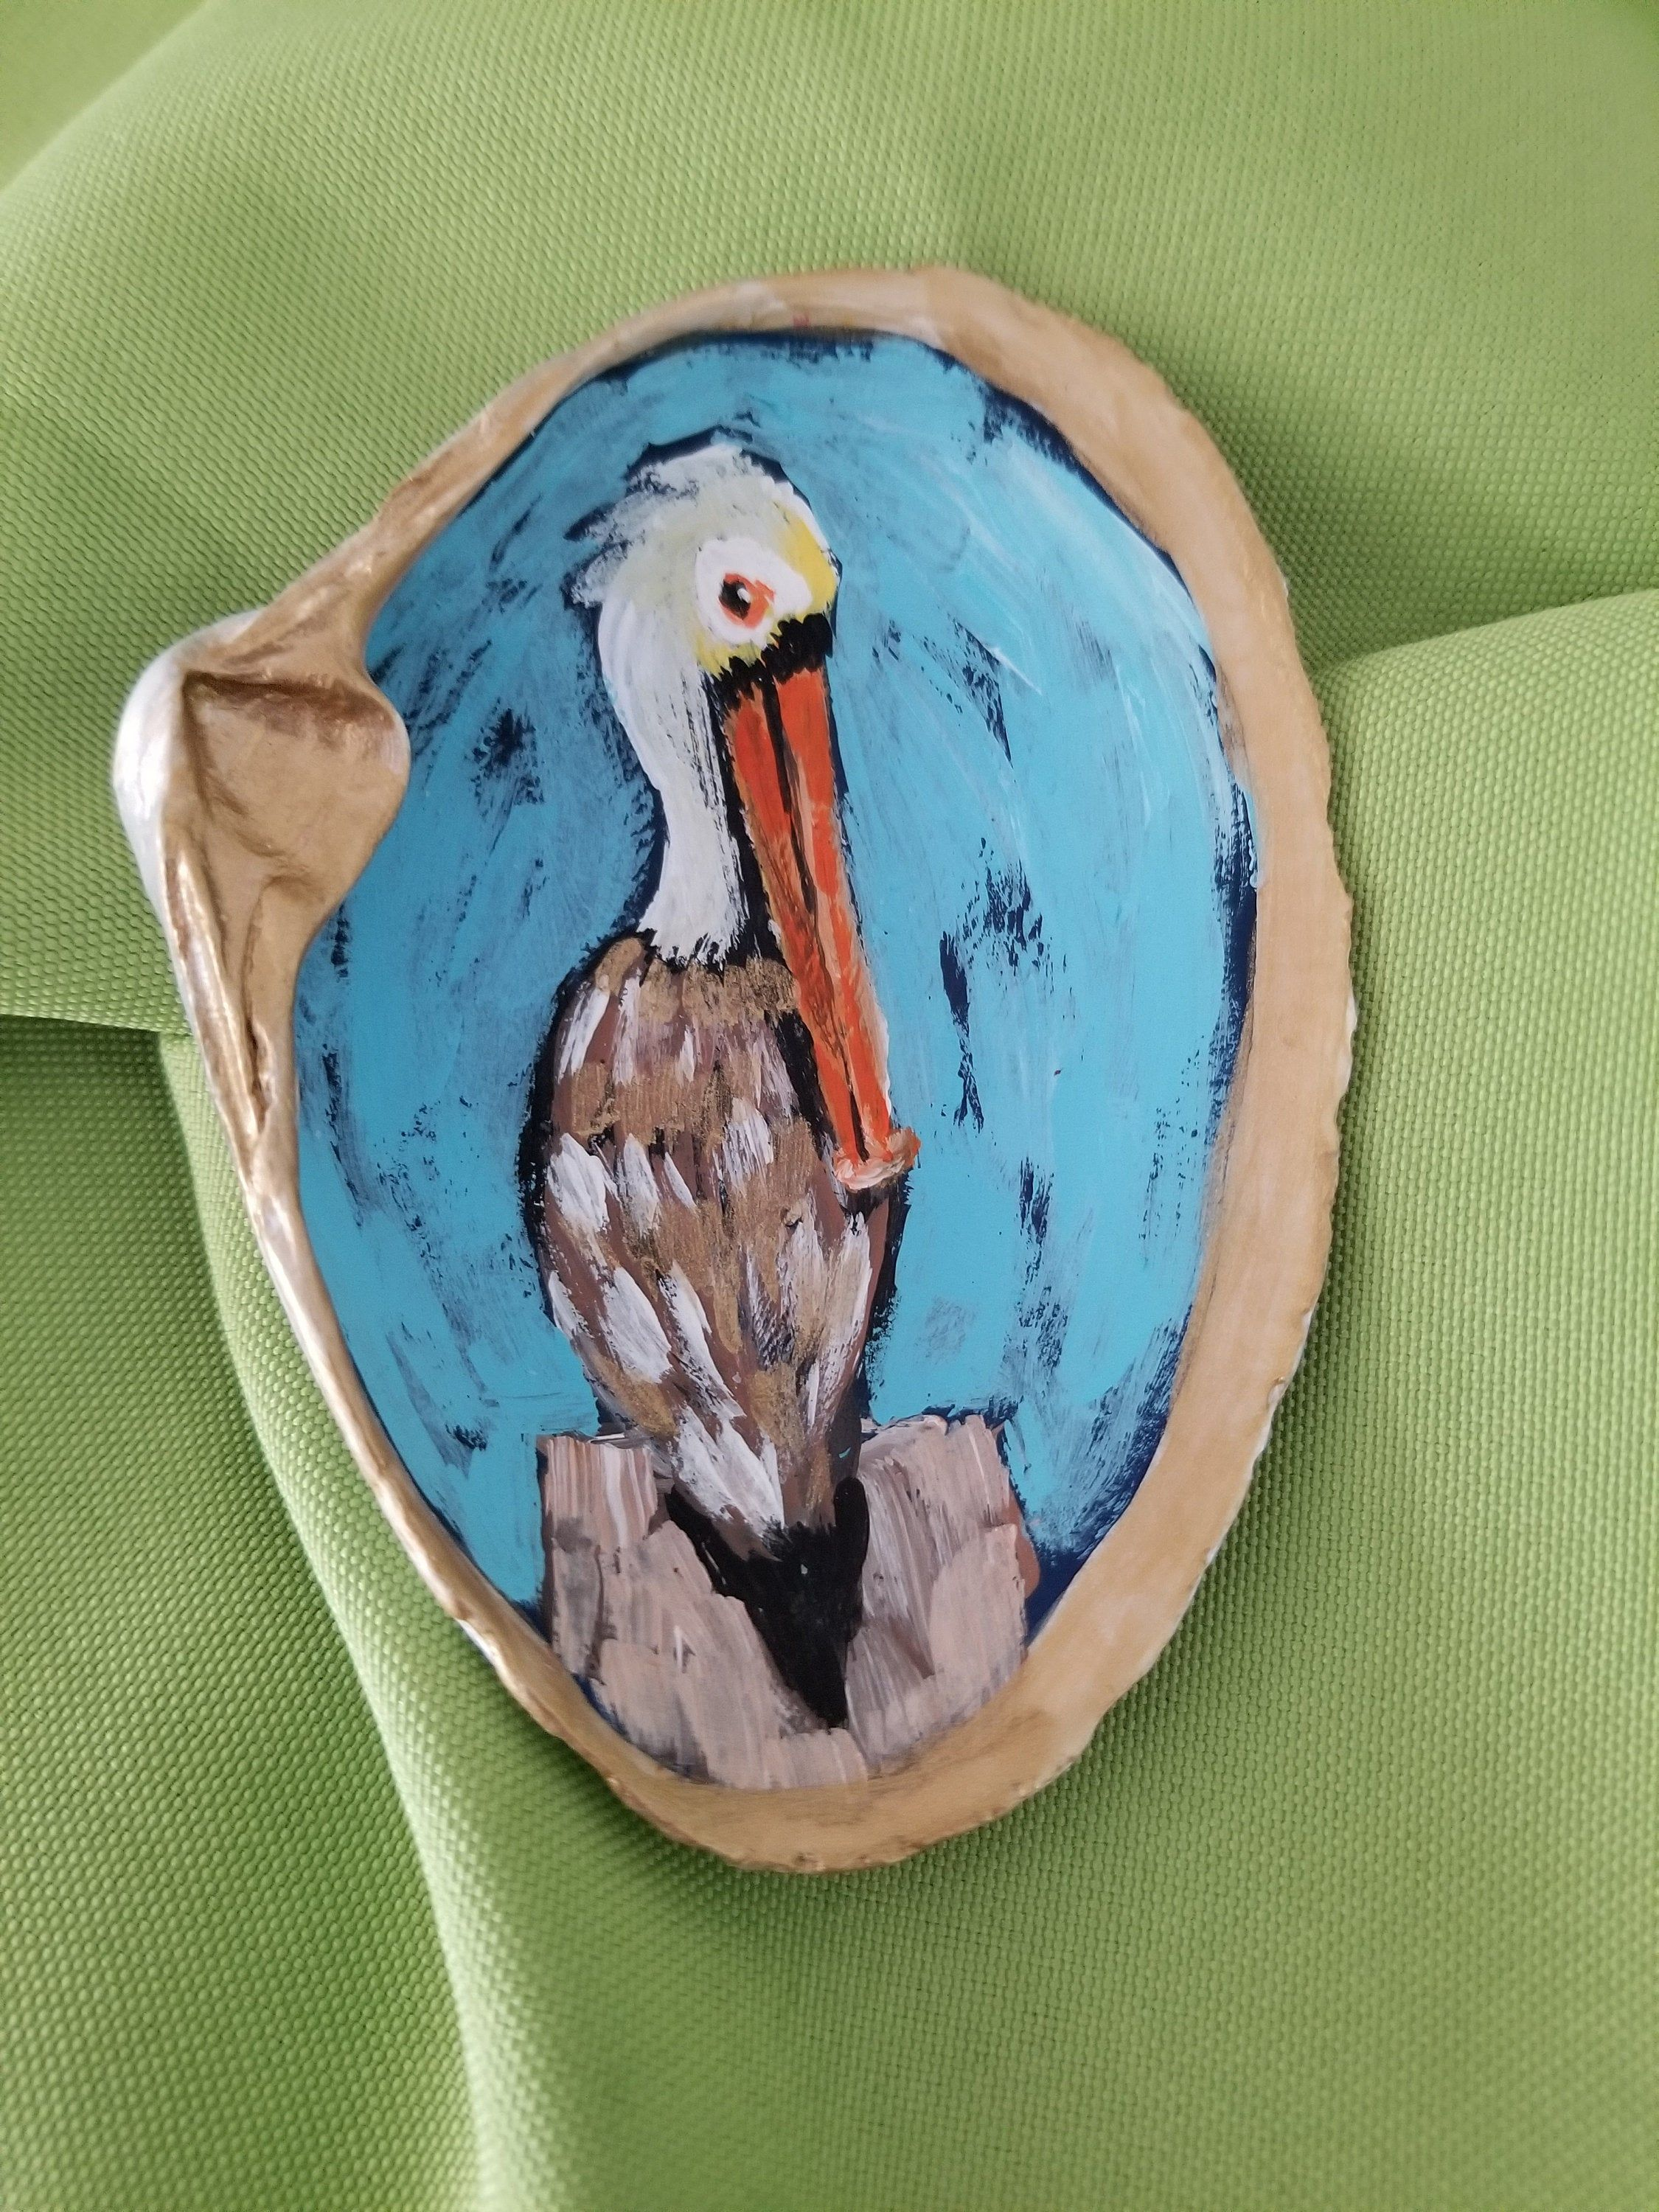 Jewelry Dish Miniature Painting Ring Dish with a Hand Painted Pelican in Acrylics on an Oyster Shell